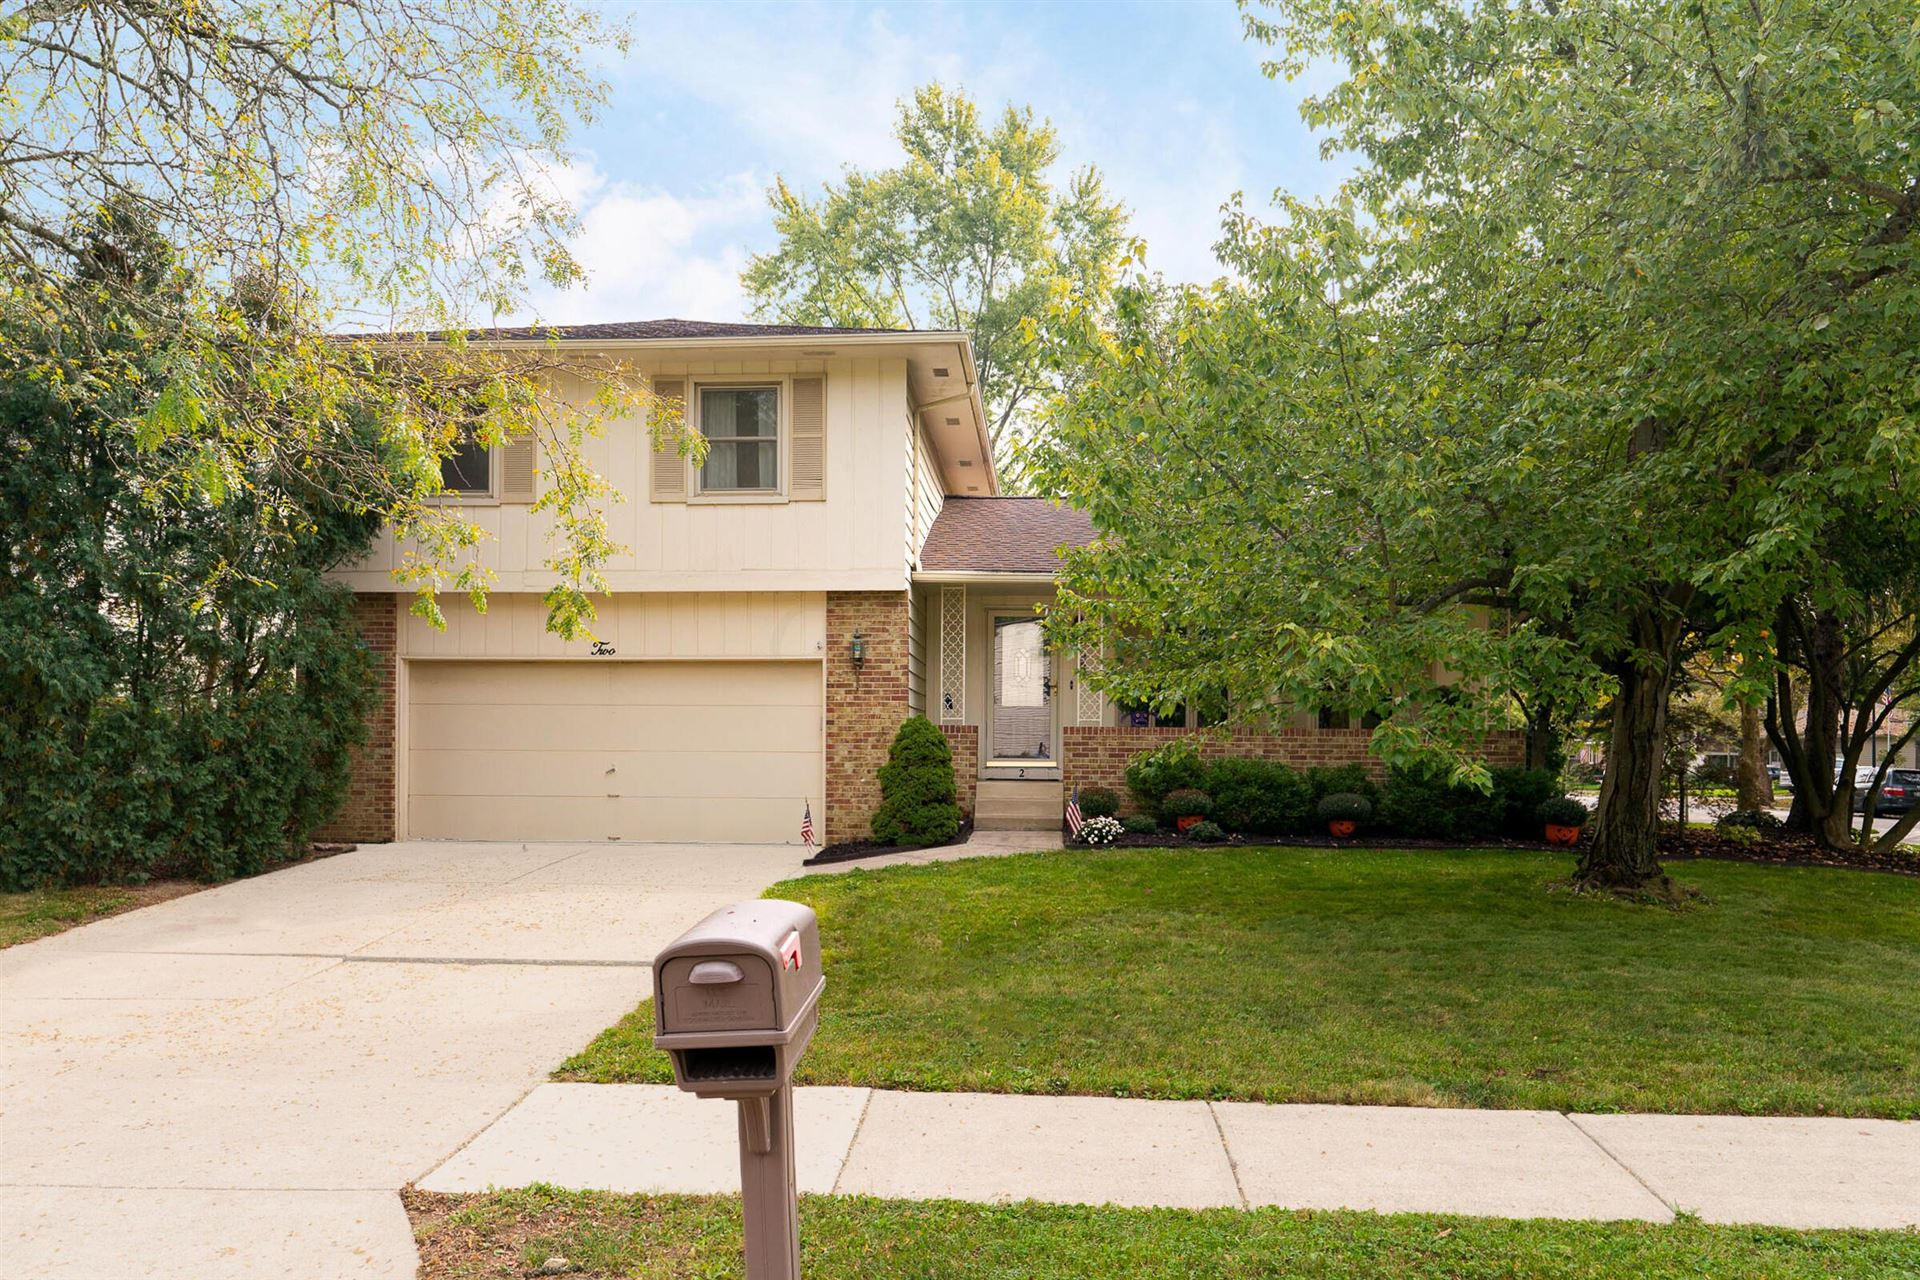 Photo of 2 College Court, Westerville, OH 43081 (MLS # 221039919)